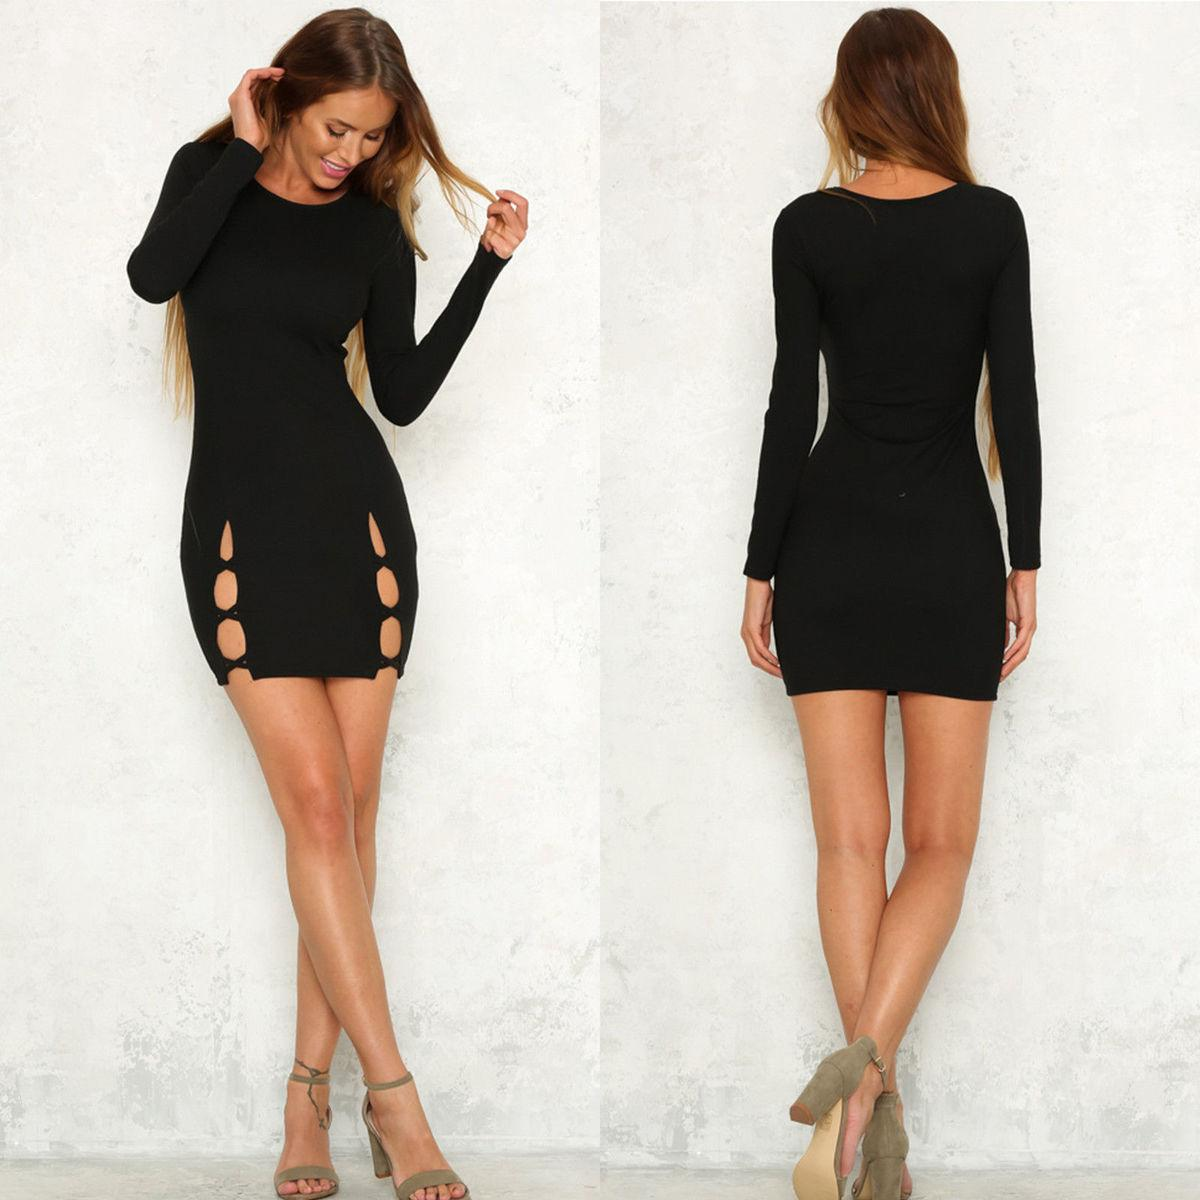 a87134995e8 Sexy Women Casual Bandage Bodycon Long Sleeve Round Neck Autumn Evening  Party Short Mini Dress Solid Black White Lace Dress Casual Green Dresses  For Teens ...